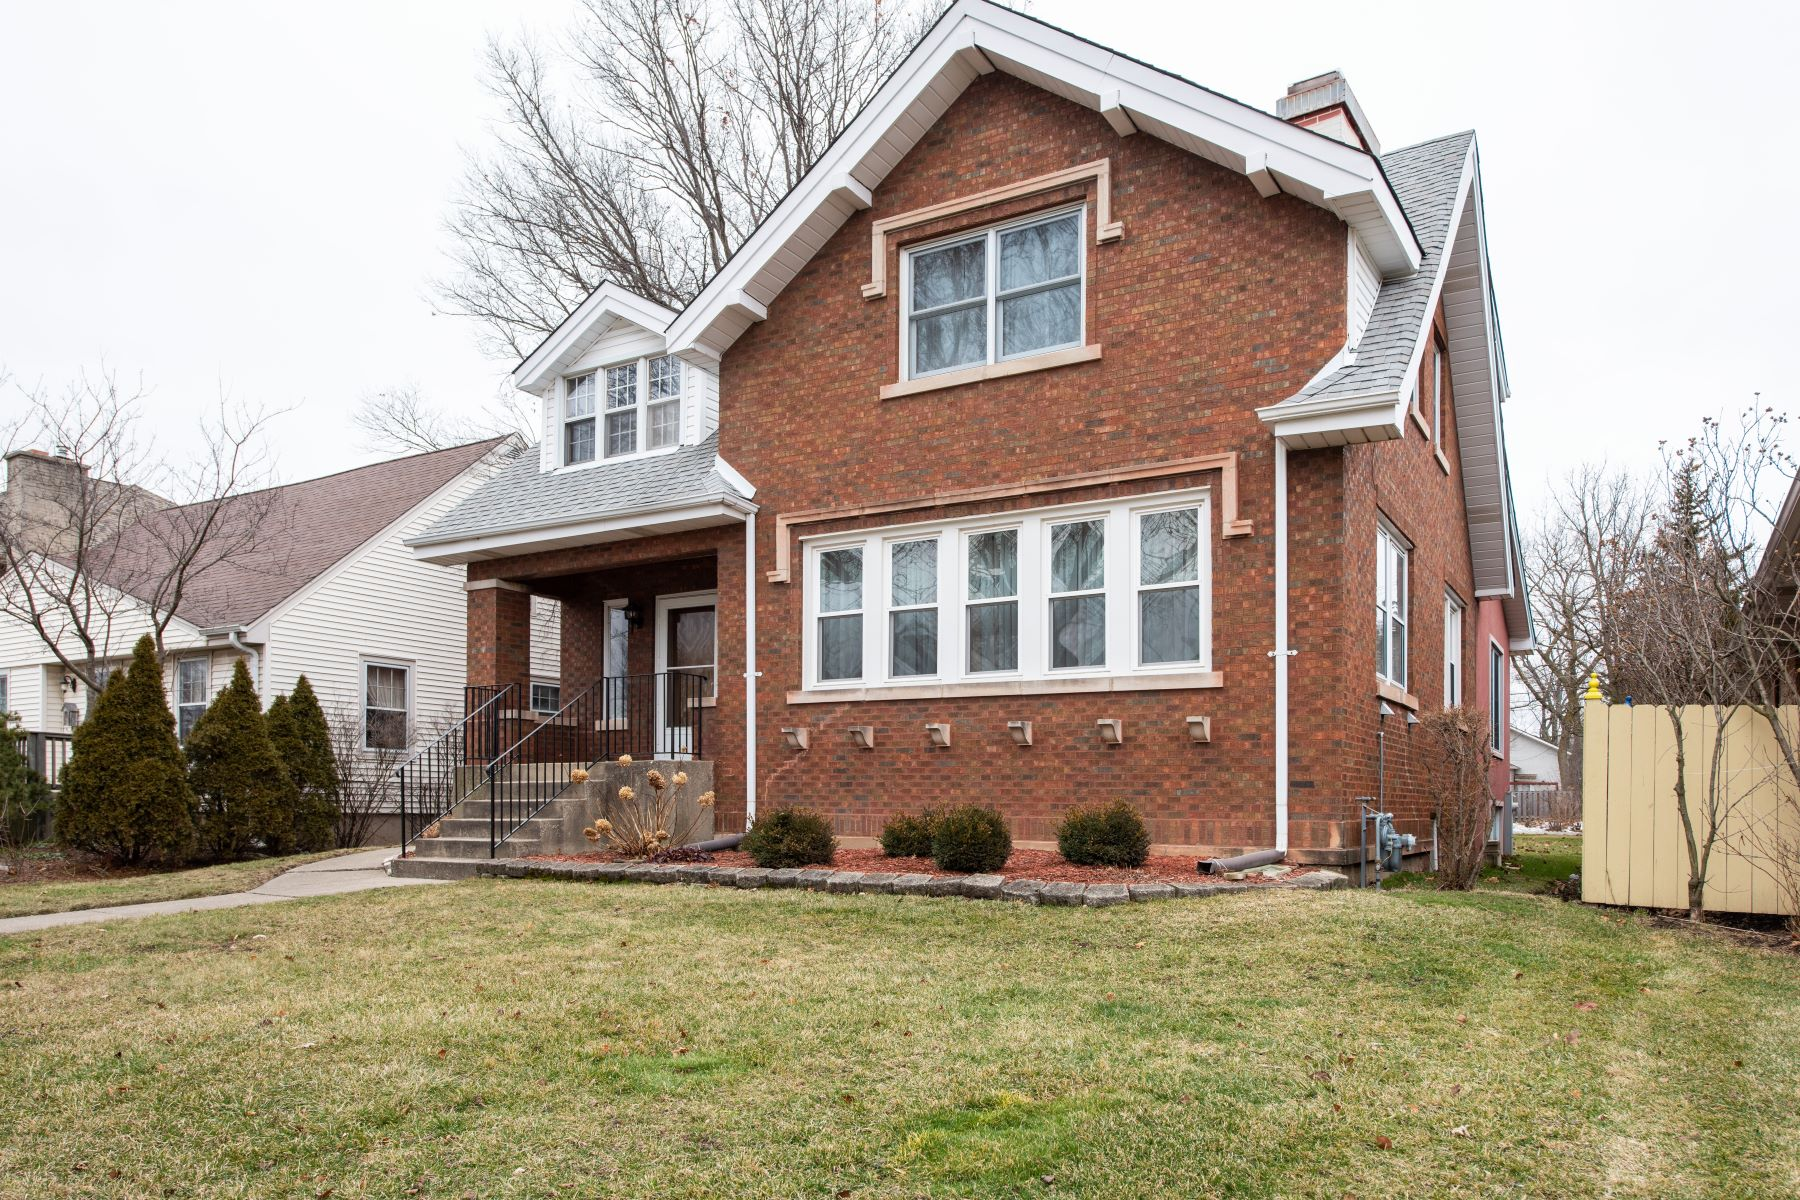 Single Family Homes for Active at Terrific Curb Appeal Home 1117 Courtland Avenue Park Ridge, Illinois 60068 United States